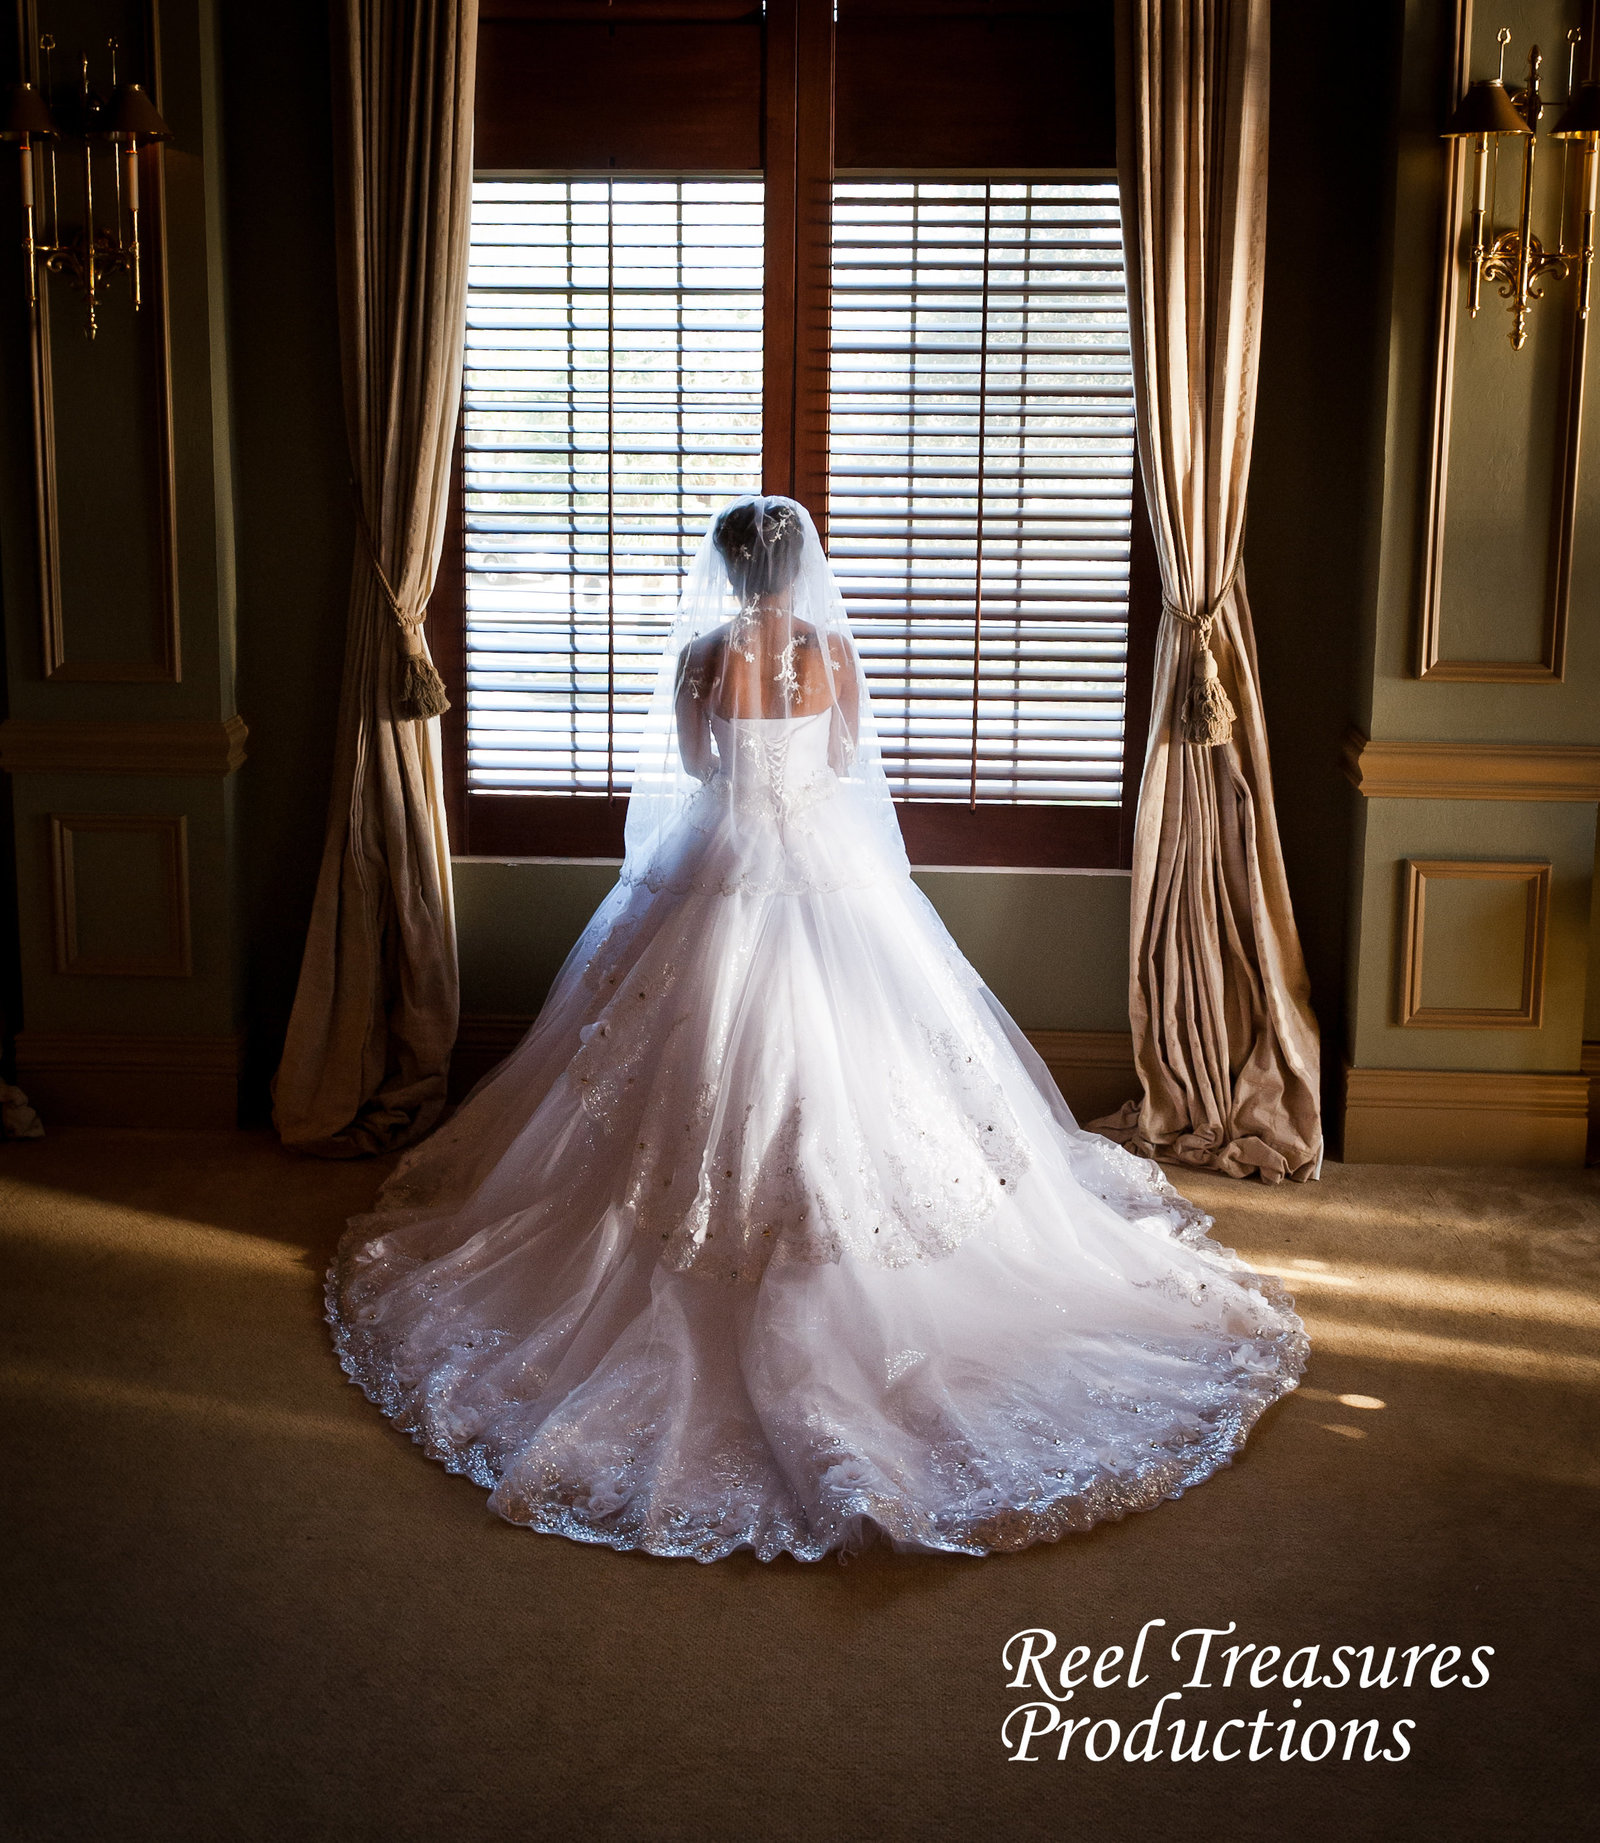 Award Winning Photography and Videography for your Wedding and Event by Reel Treasures